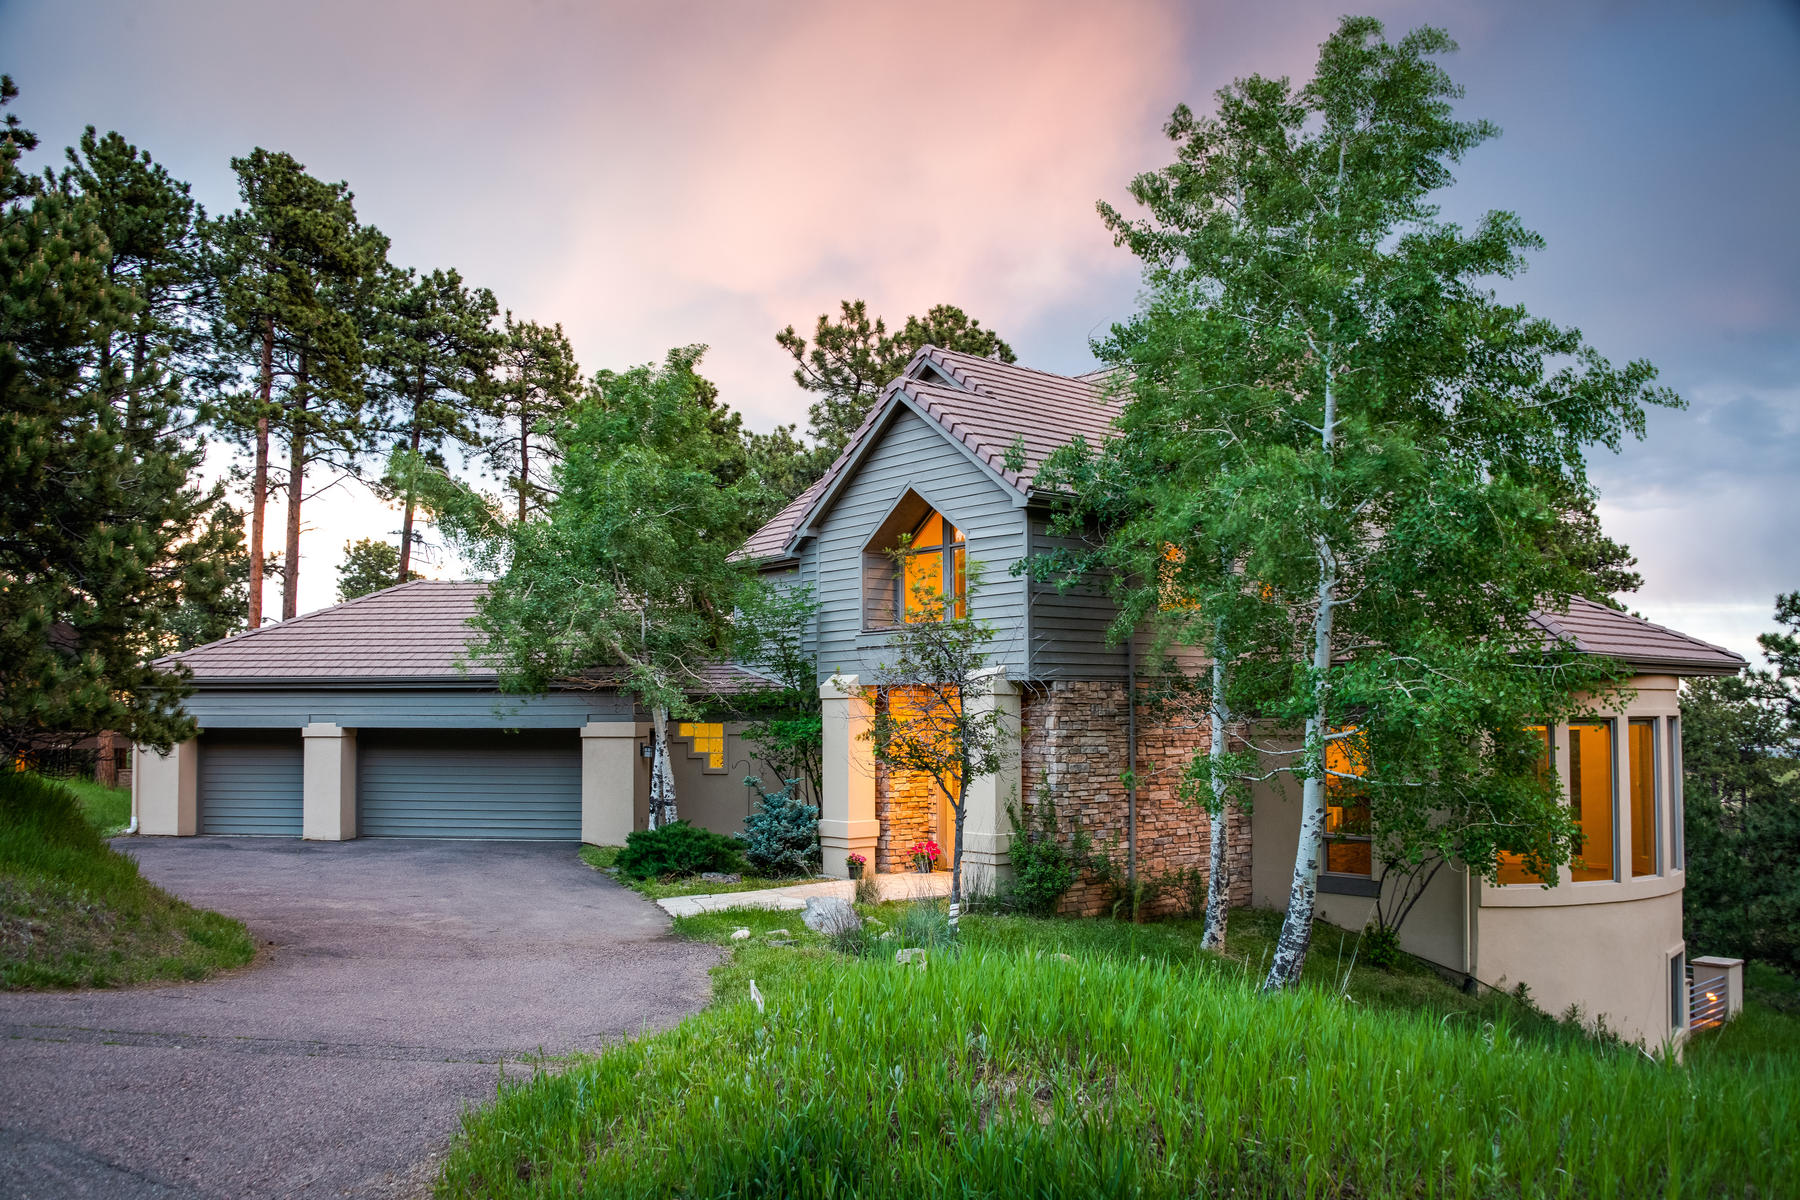 Single Family Homes for Sale at Sparkling City Light Views and Dramatic Sunset Colors Surrounded by Nature 1204 Snowberry Drive Golden, Colorado 80401 United States